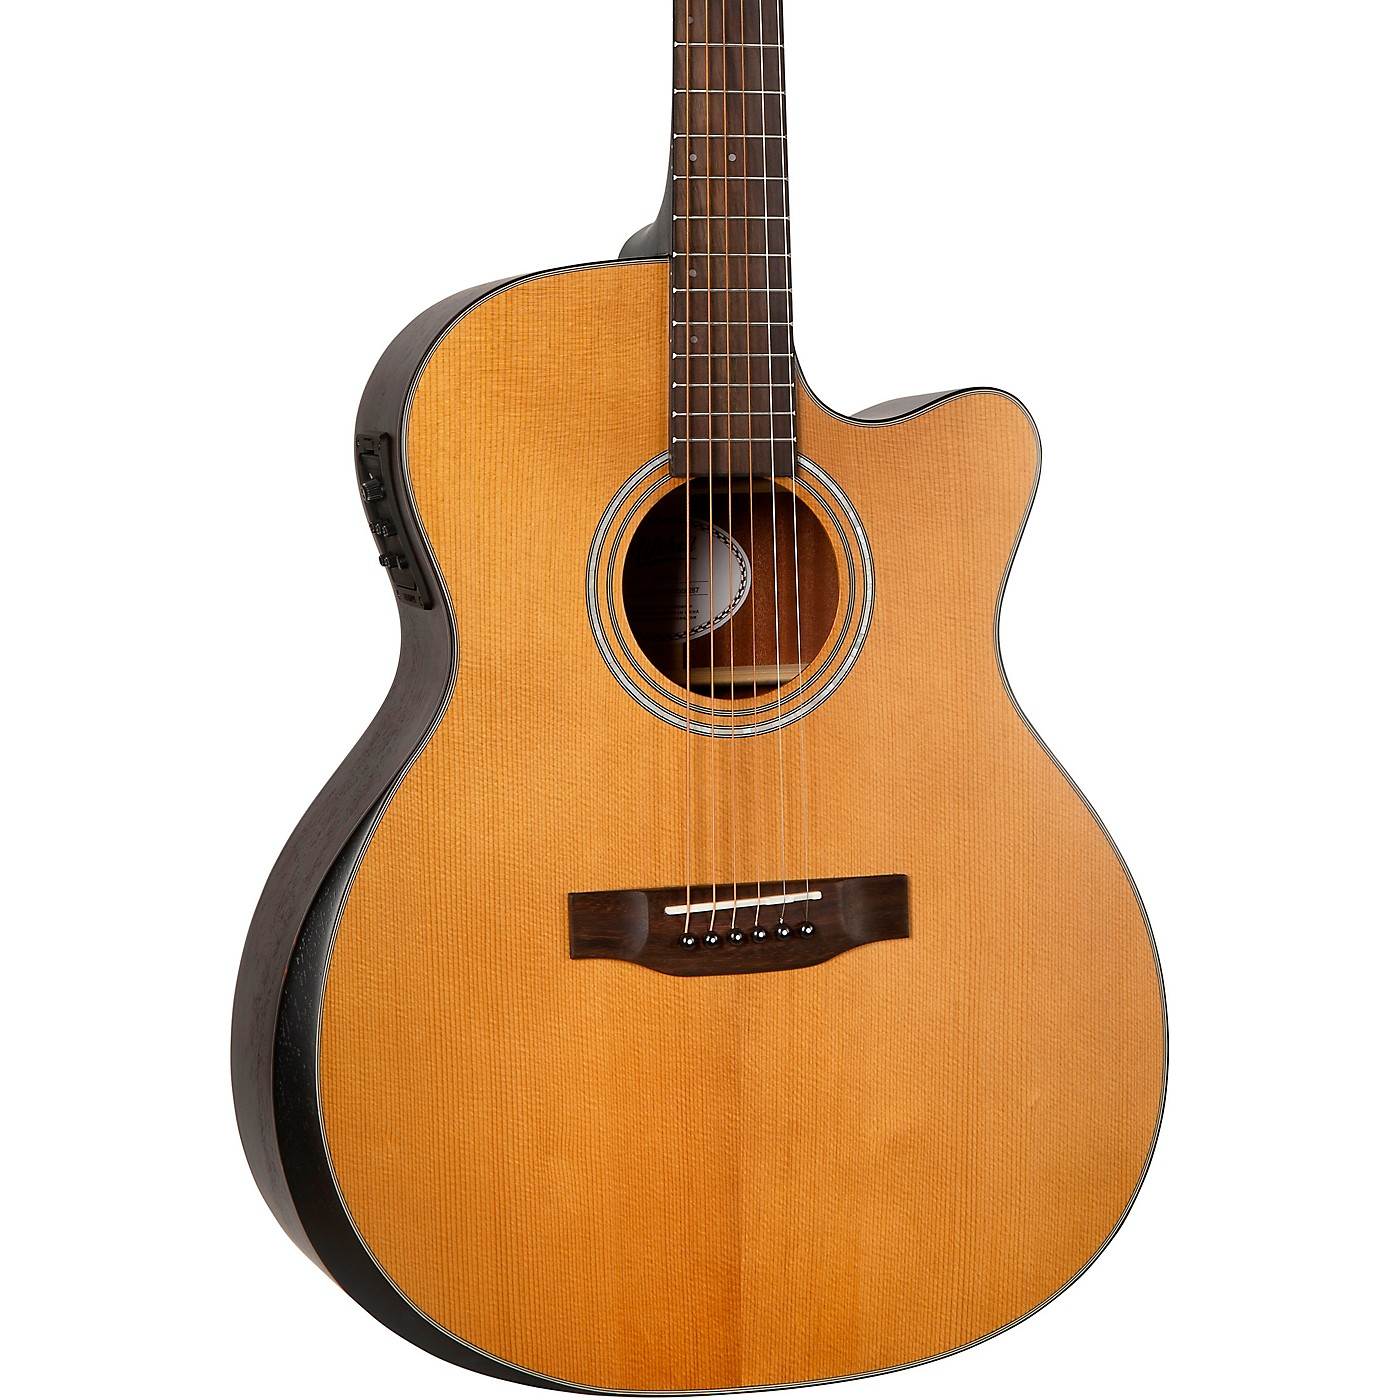 Mitchell T413CE Solid Torrefied Spruce Top Auditorium Acoustic-Electric Cutaway Guitar thumbnail